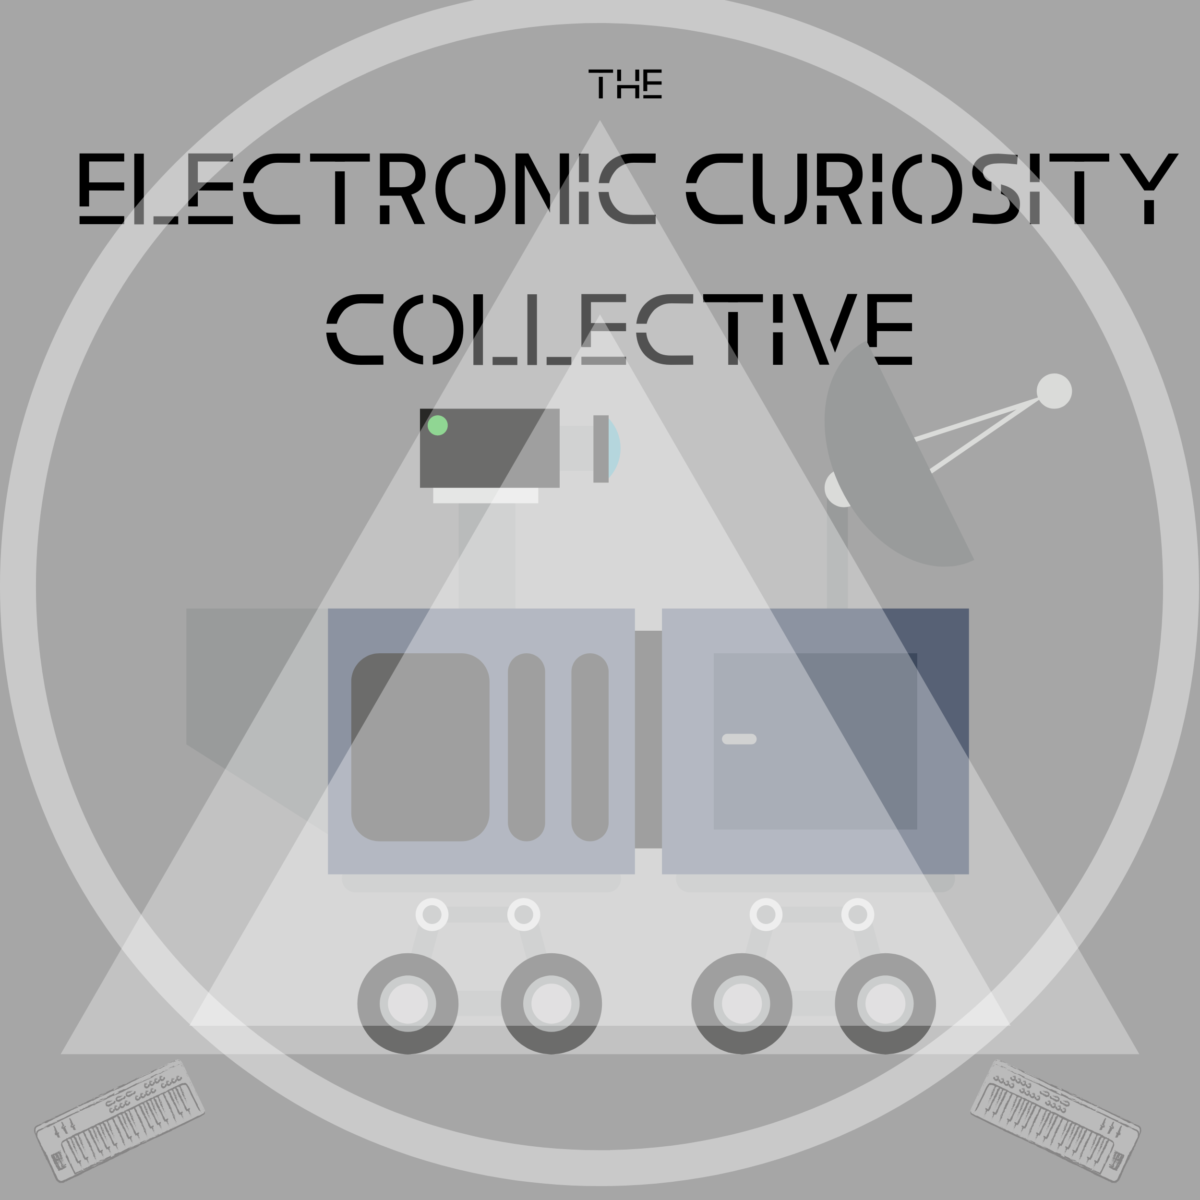 Electronic Curiosity Collective